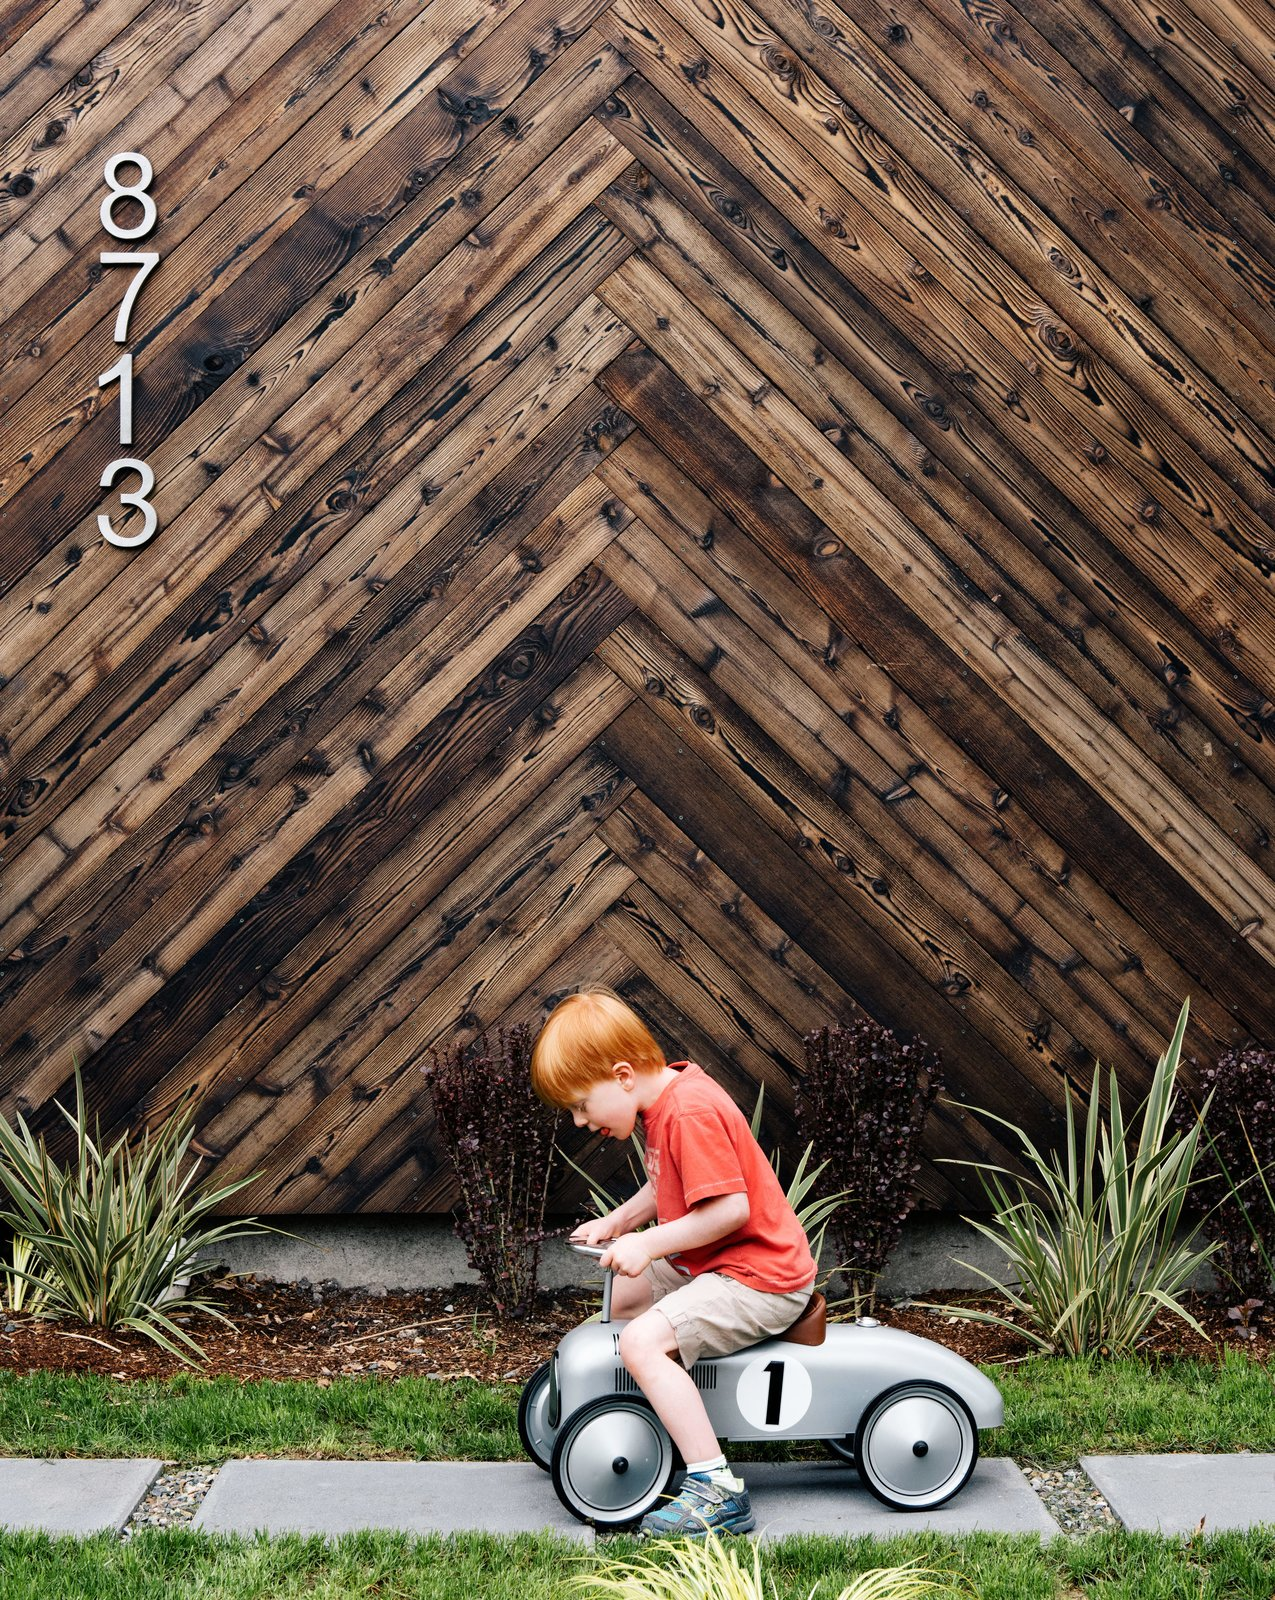 Passive House wood exterior with child riding toy car across grass lawn.